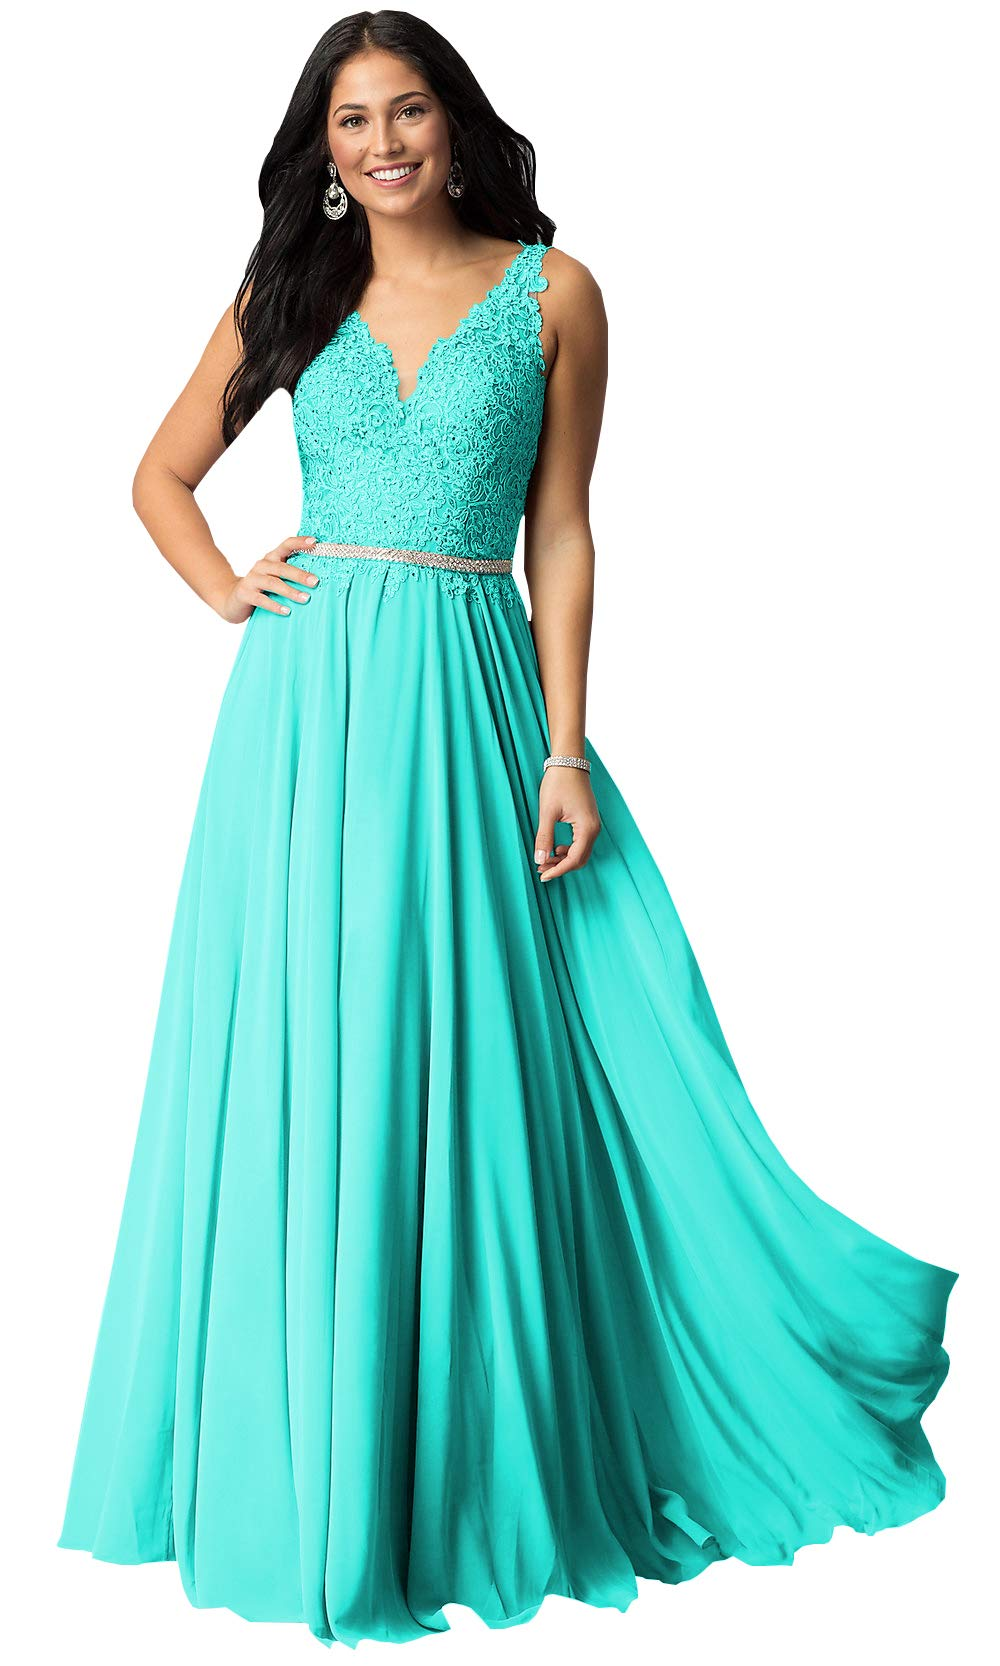 Plus Size V Neck Lace Beaded Chiffon Prom Dresses Long Formal Evening Party  Gown (Turquoise,18W)